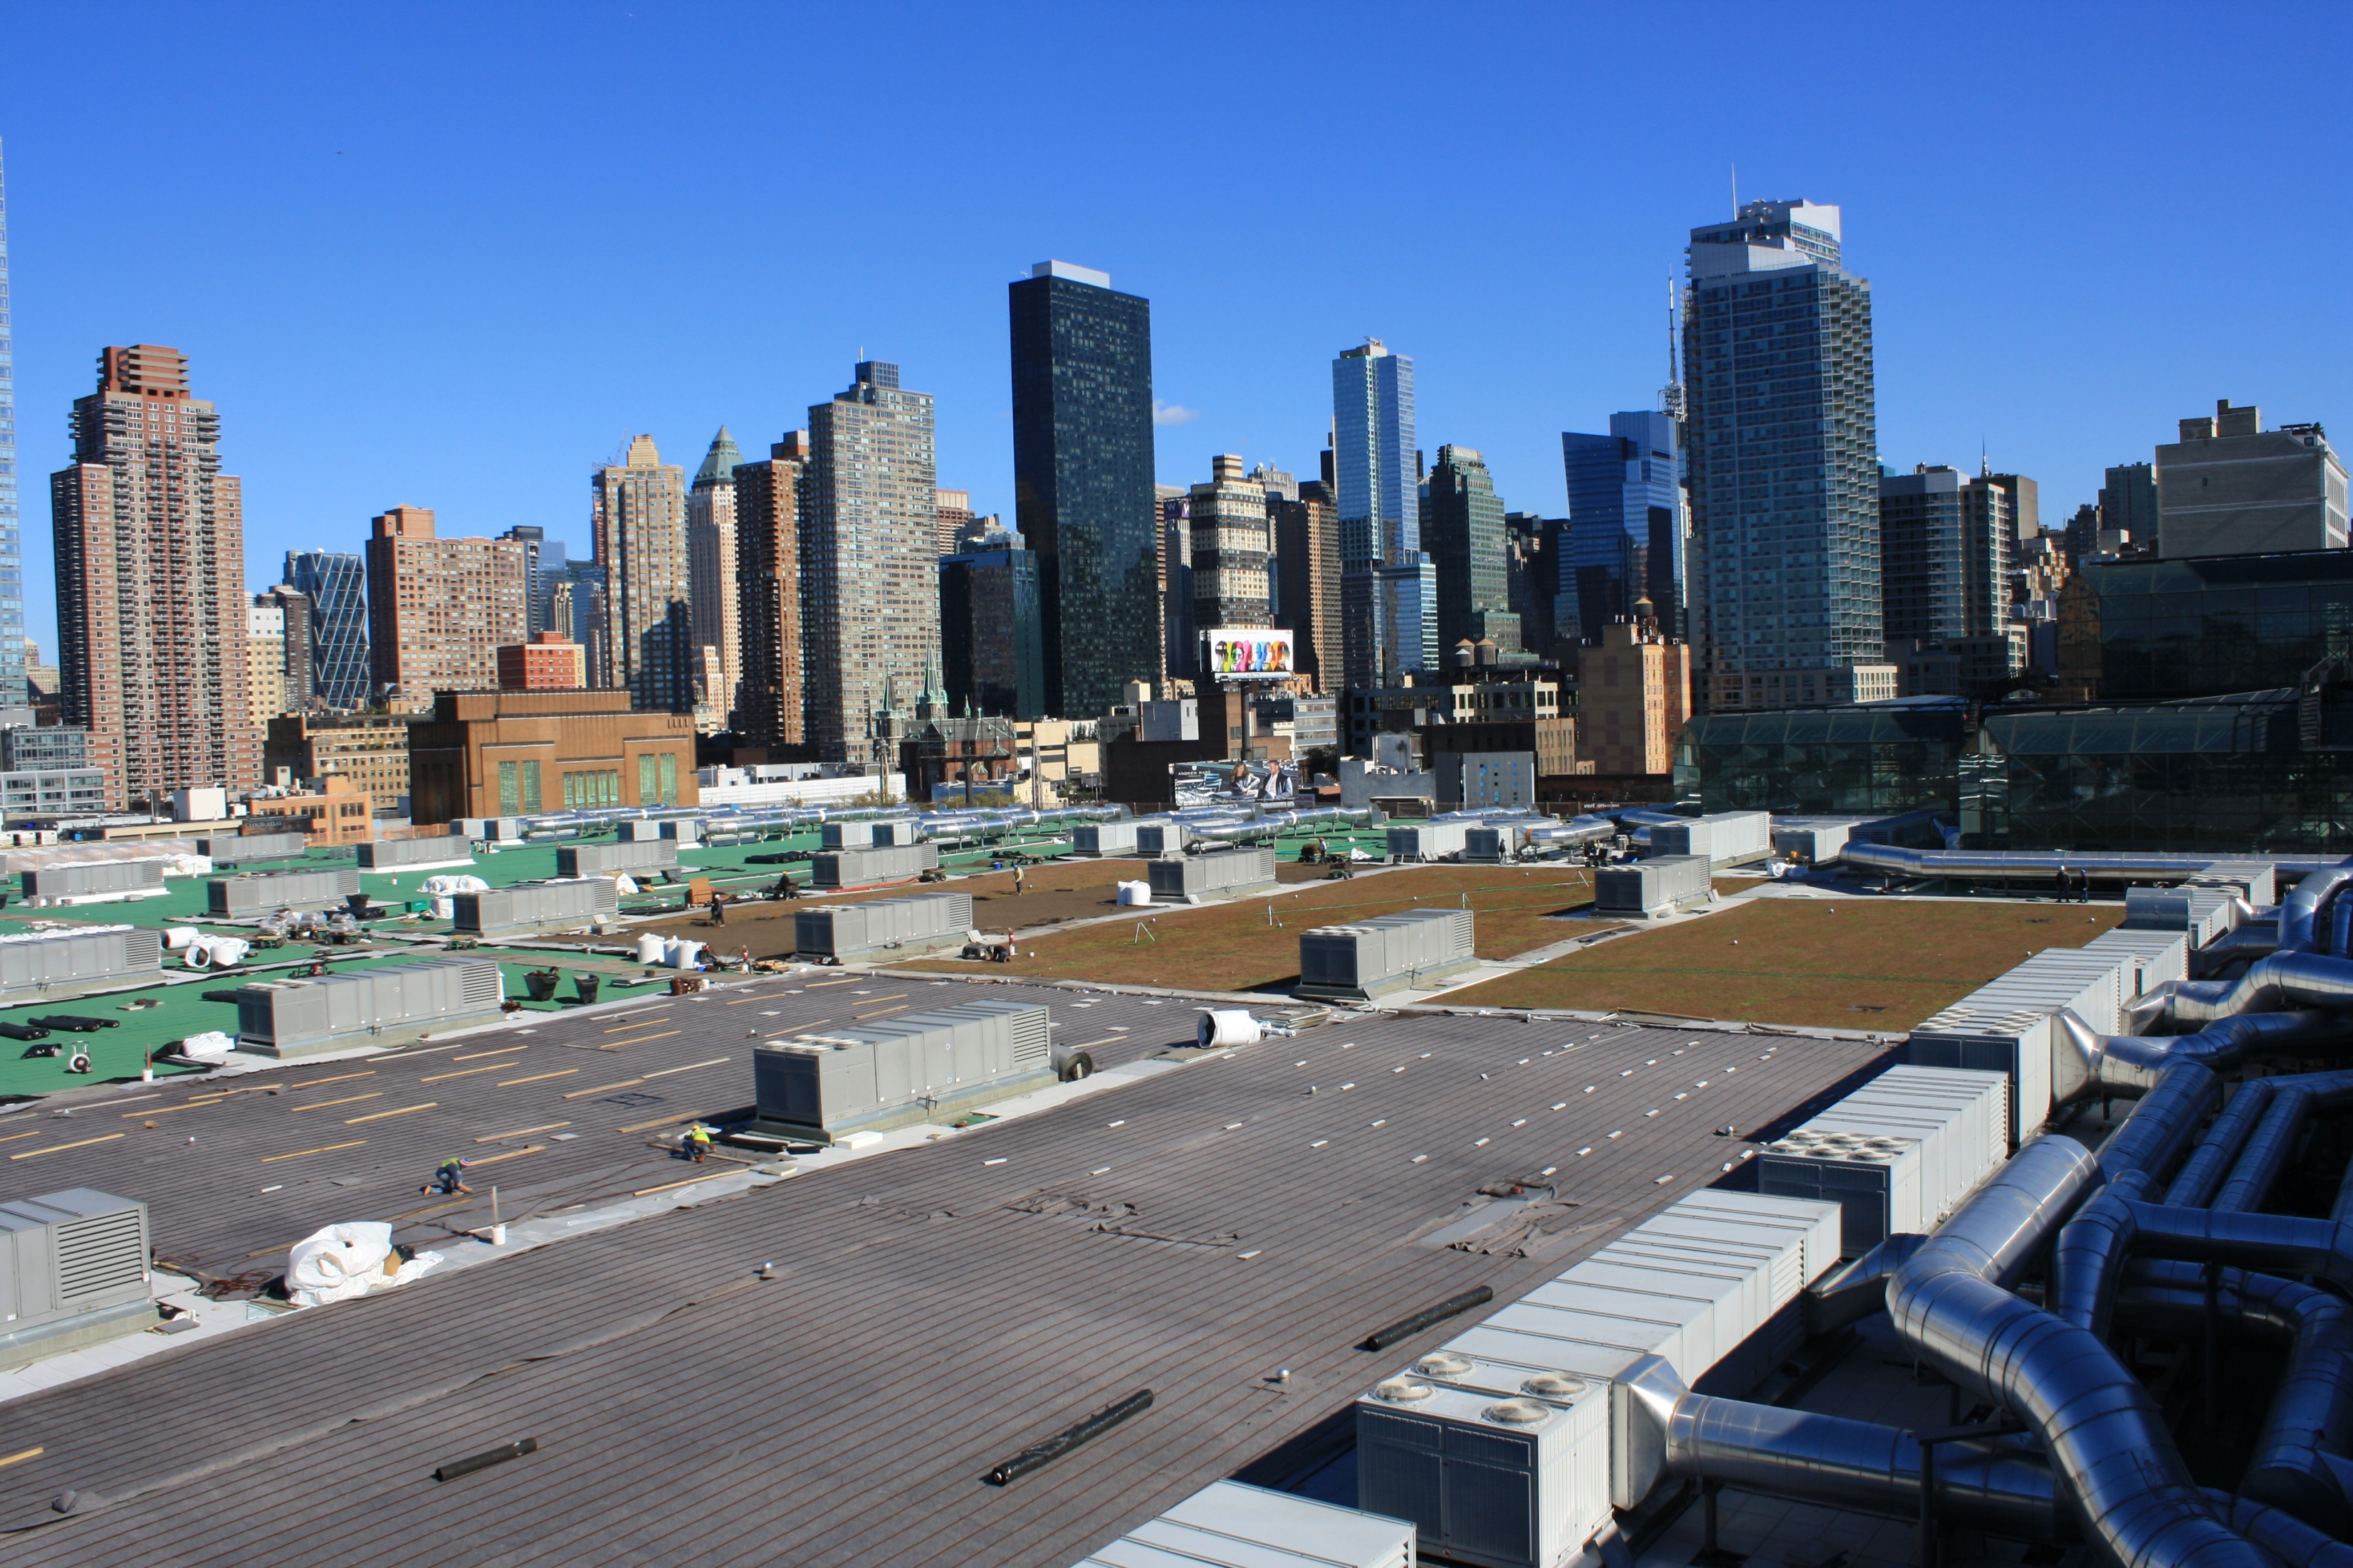 Xero Flor Green Roof System Selected For Massive Green